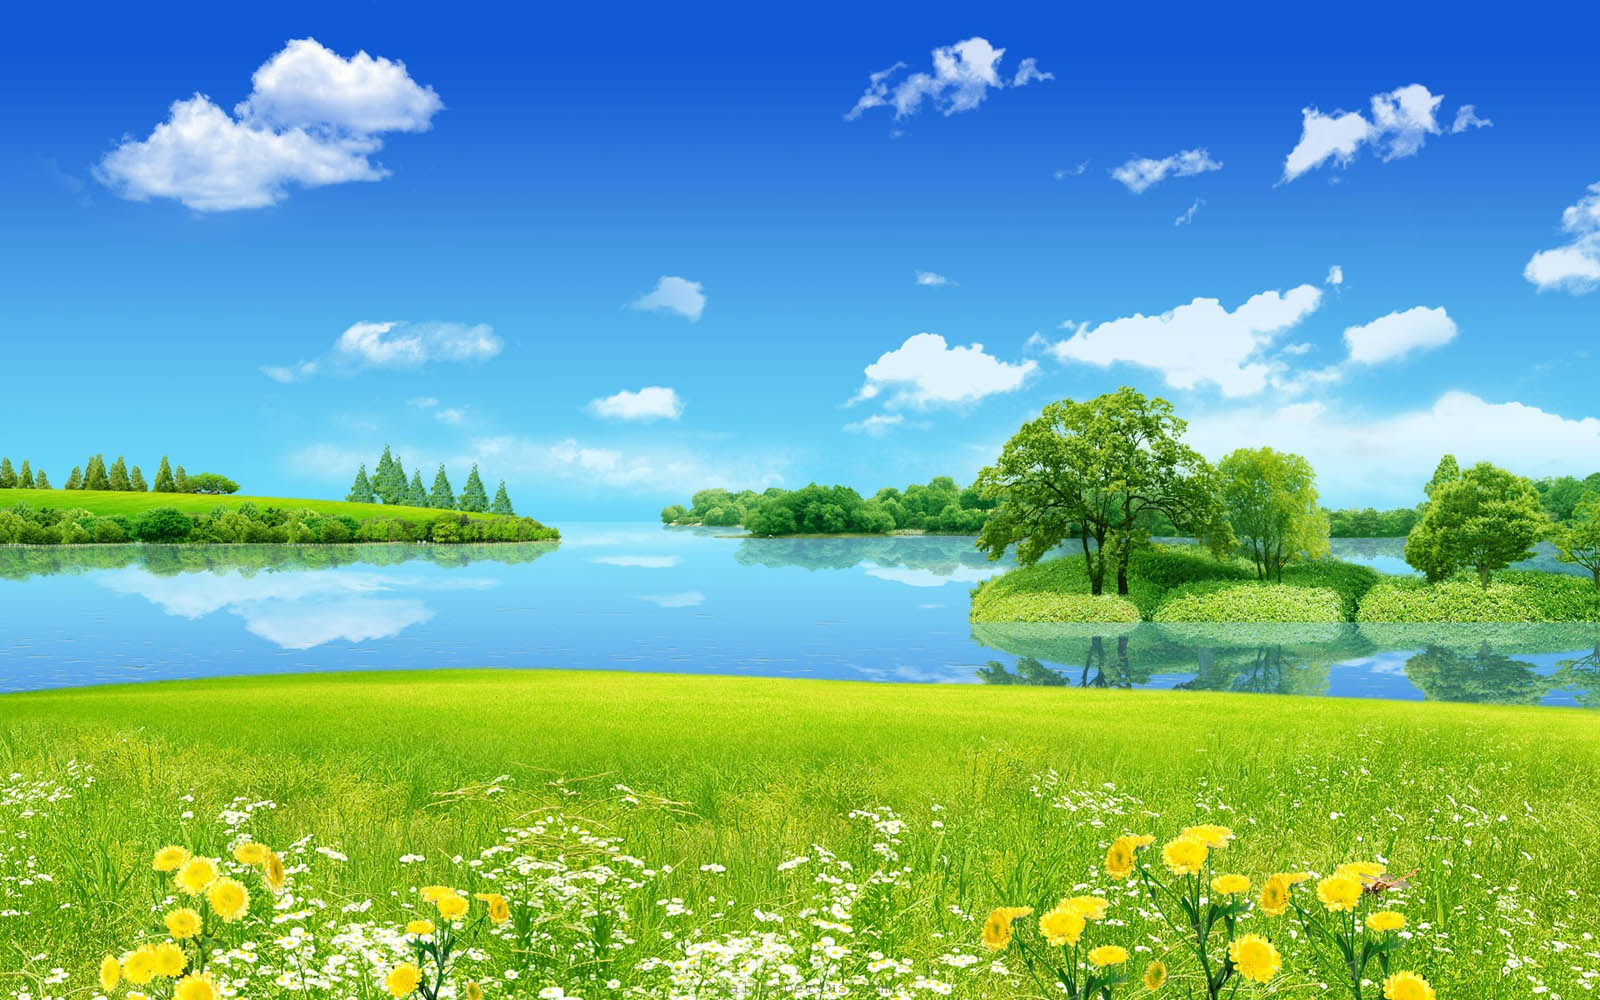 nature dream wallpapers backgrounds background dreams dreamy tag desktop yellow